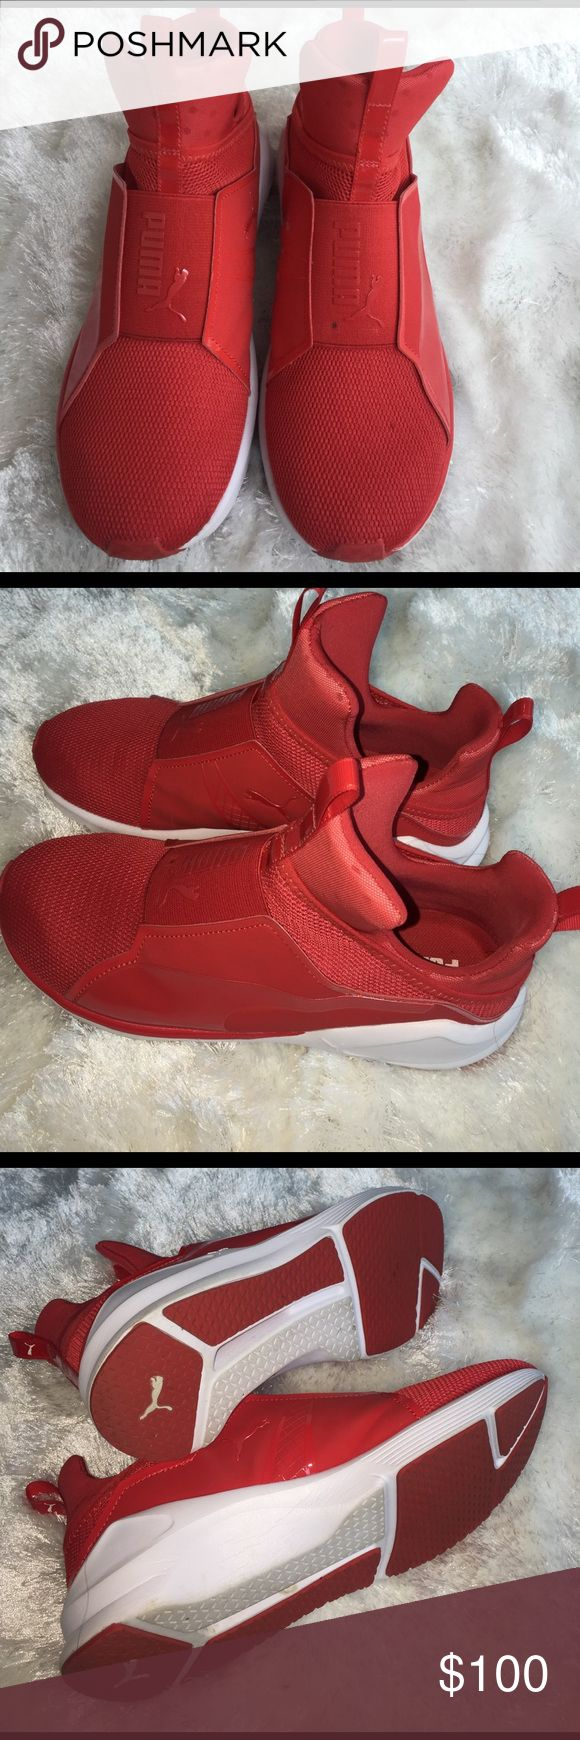 Puma sneaker Red puma not sure if Rihanna or Kylie Puma Shoes Sneakers